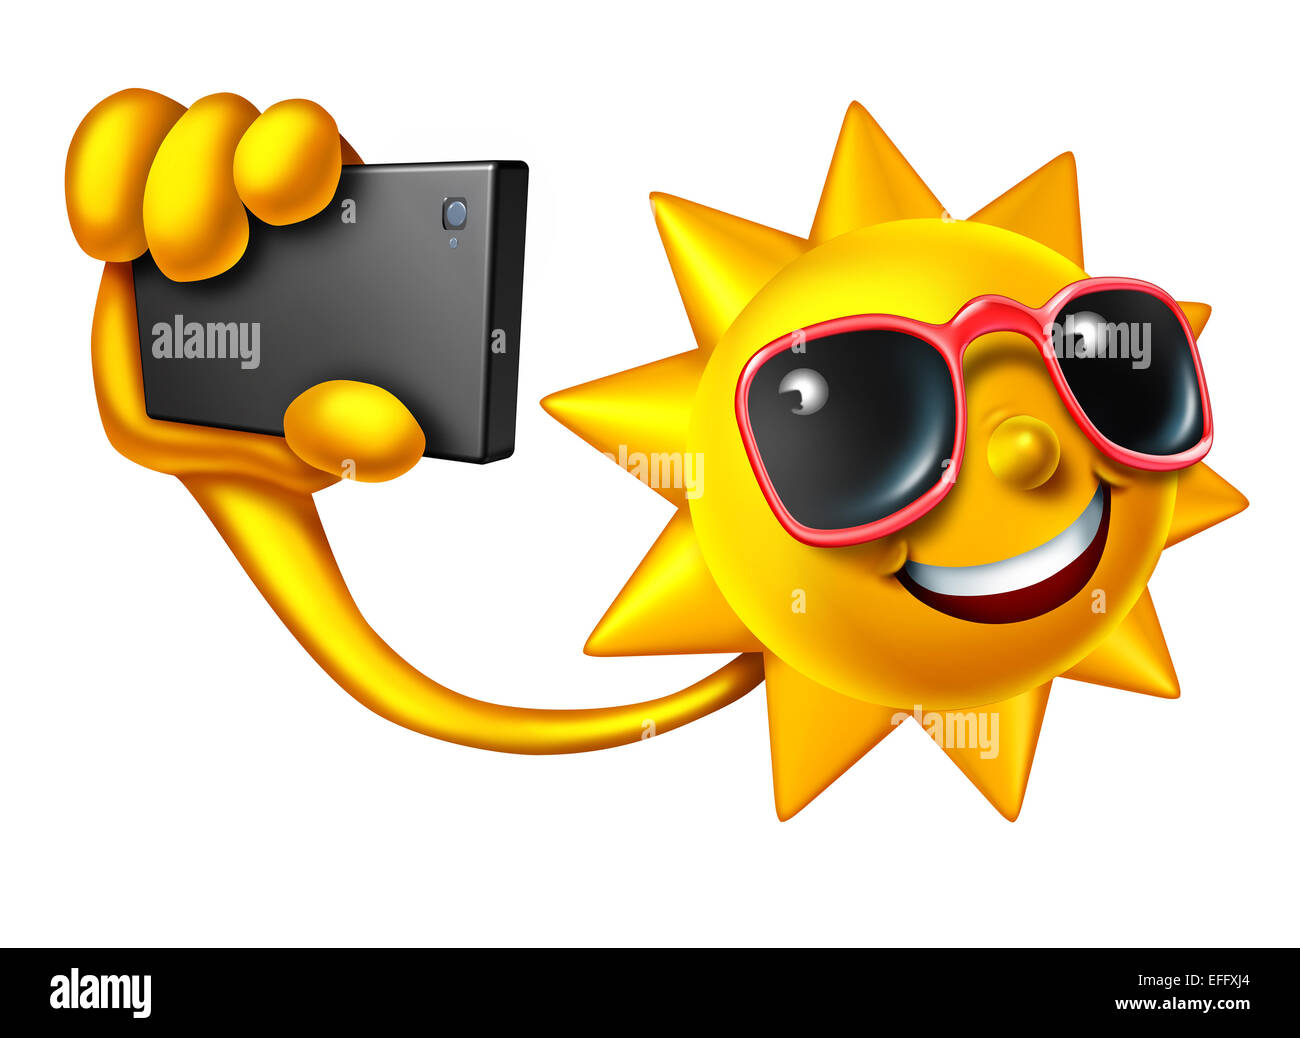 Summer selfie social media concept as a happy sun character holding a smartphone taking a portrait photo to update - Stock Image